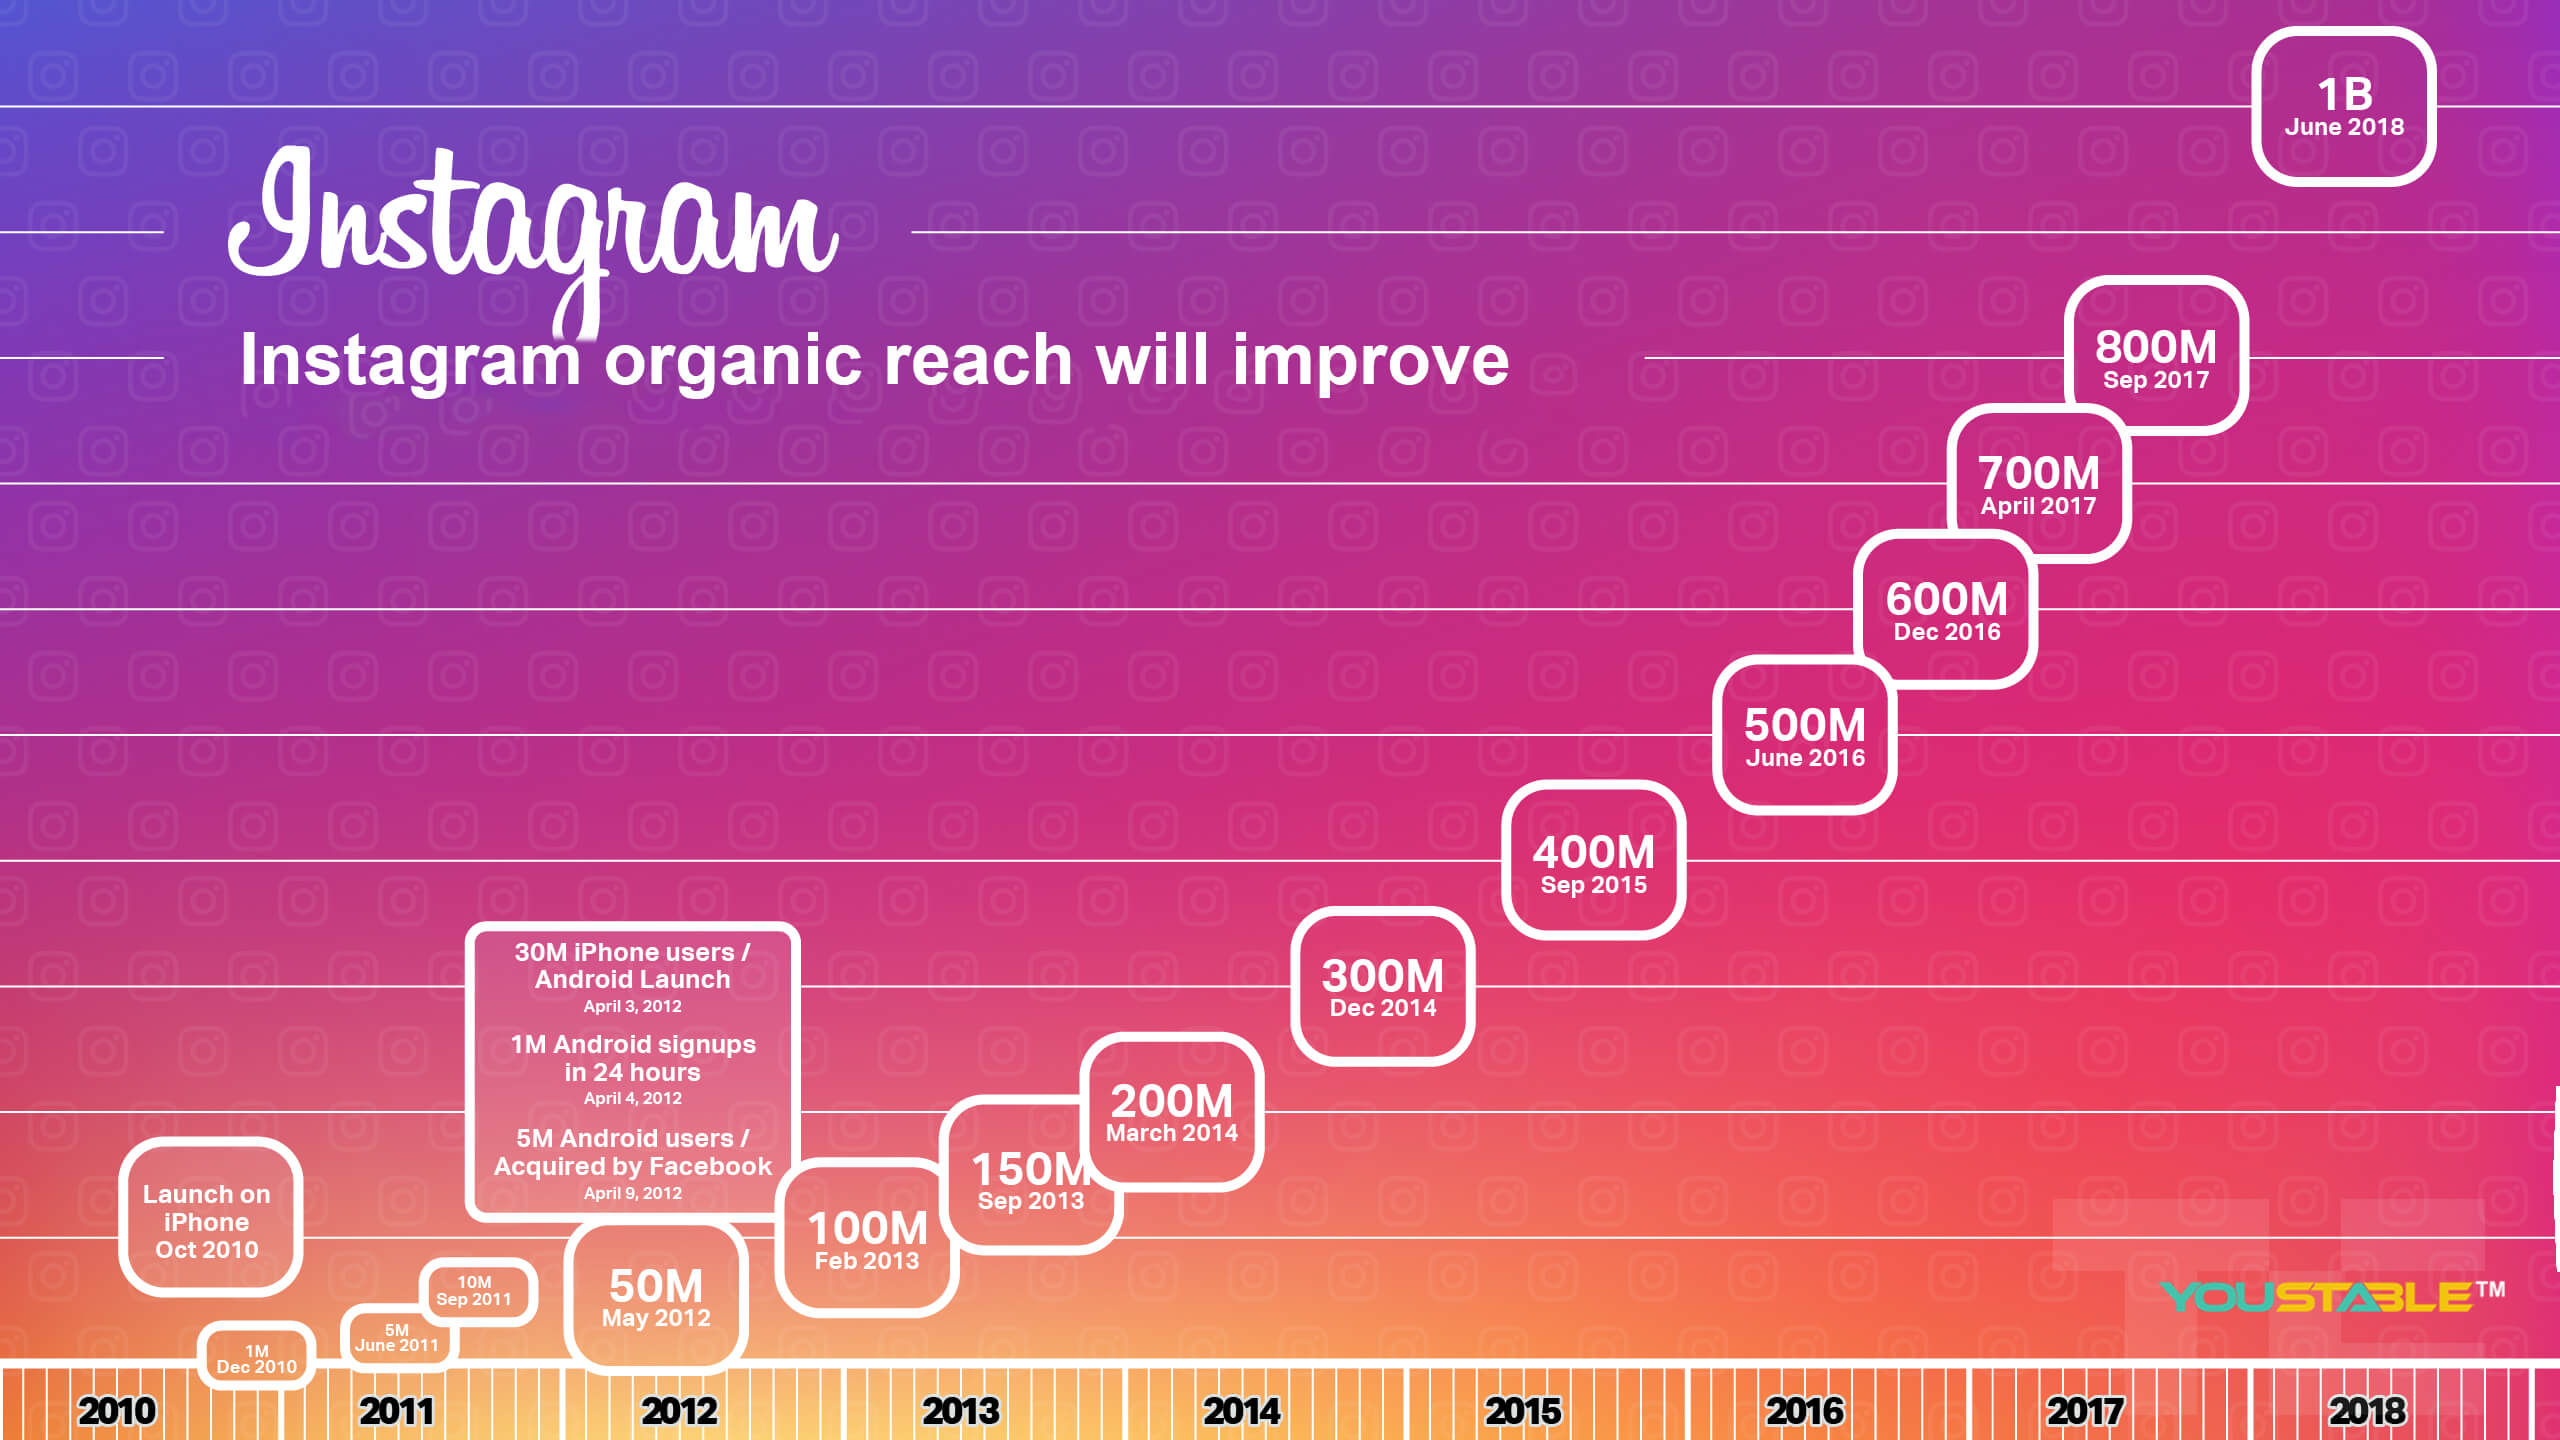 Instagram organic reach